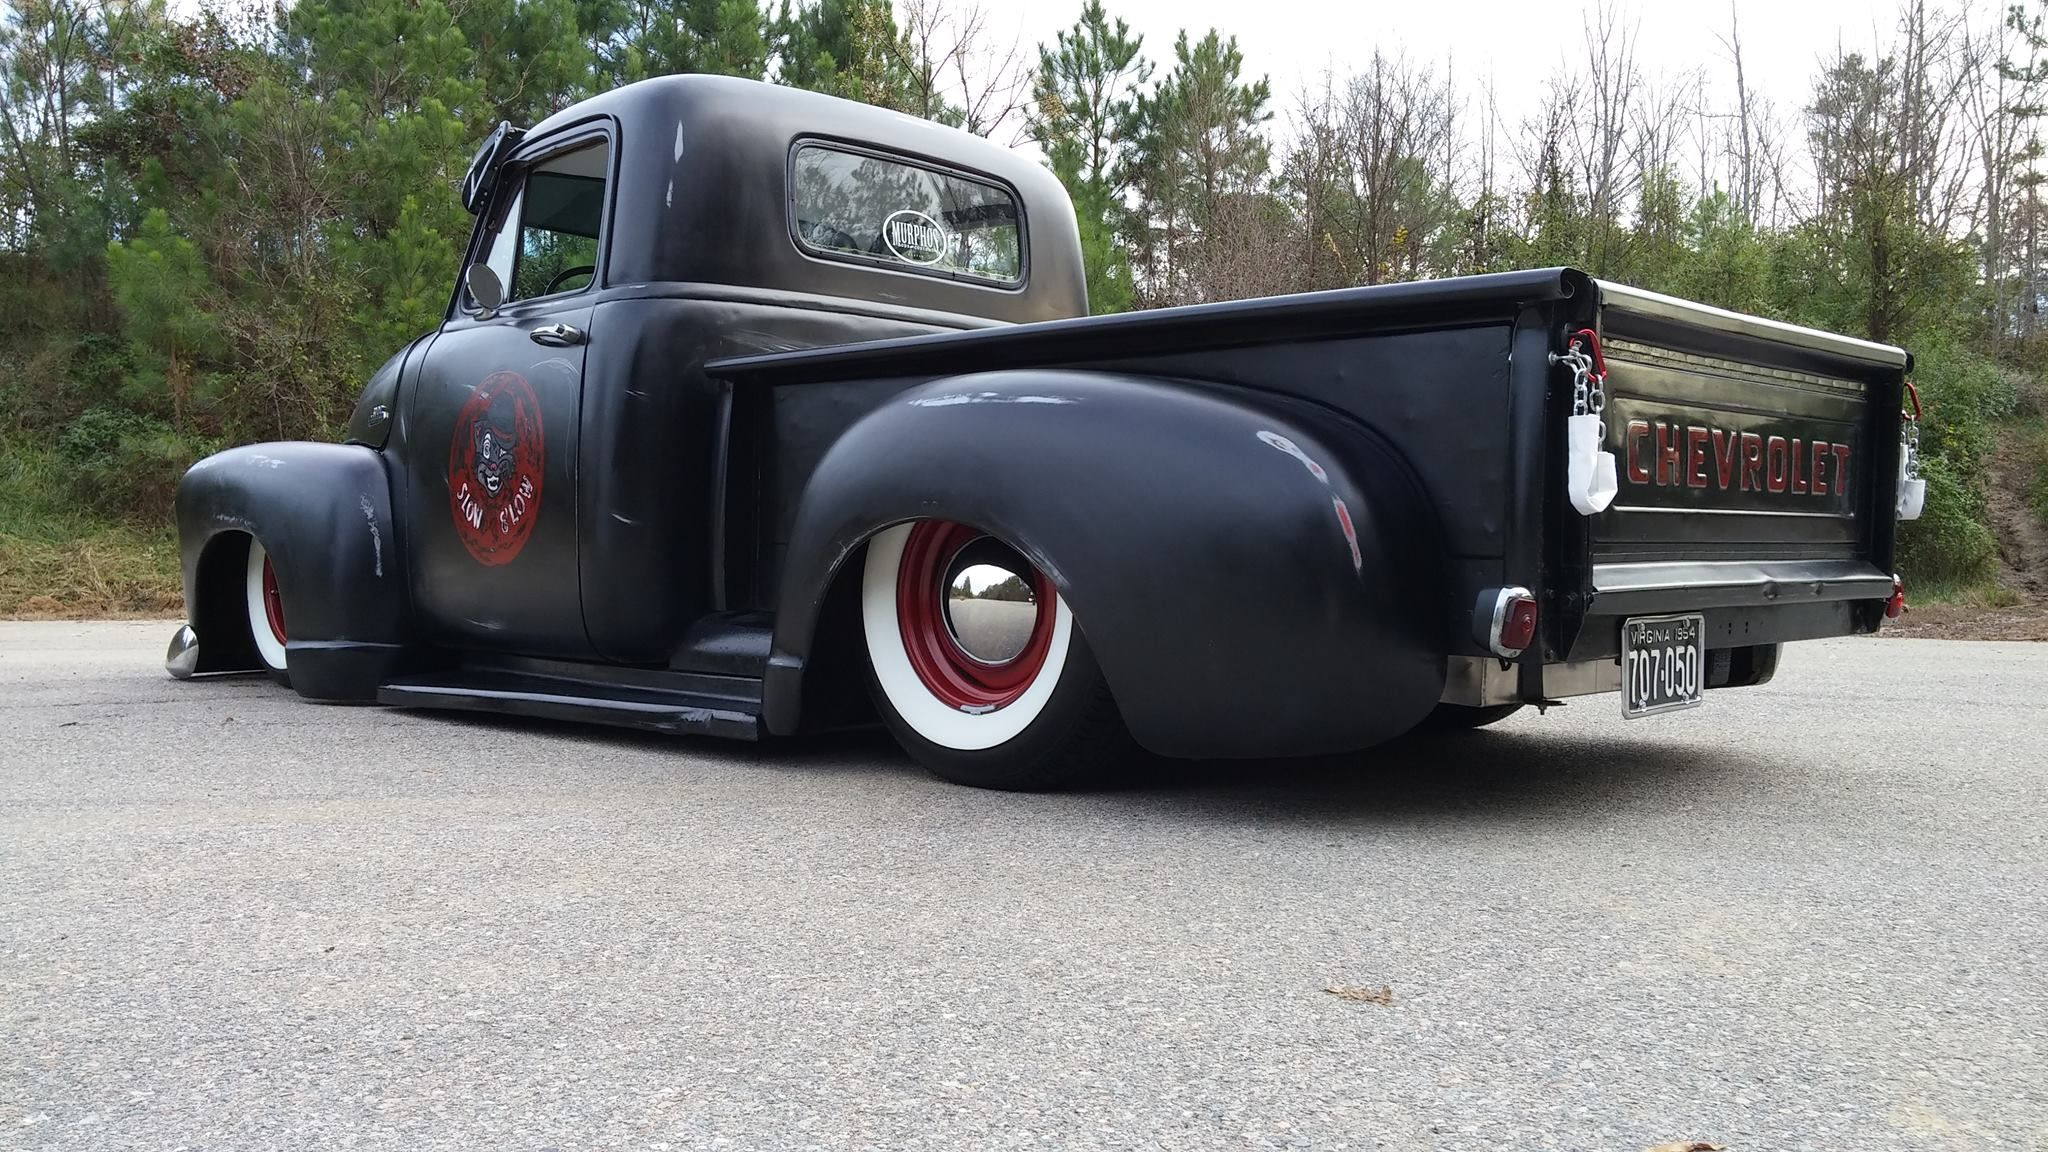 Chev Chevy Chevrolet Advance Design Pickup Truck Fauxtina Faux Tina 1949 Patina Satin Black Flat Paint With Custom Door Graphics White Wall Tires On A Set